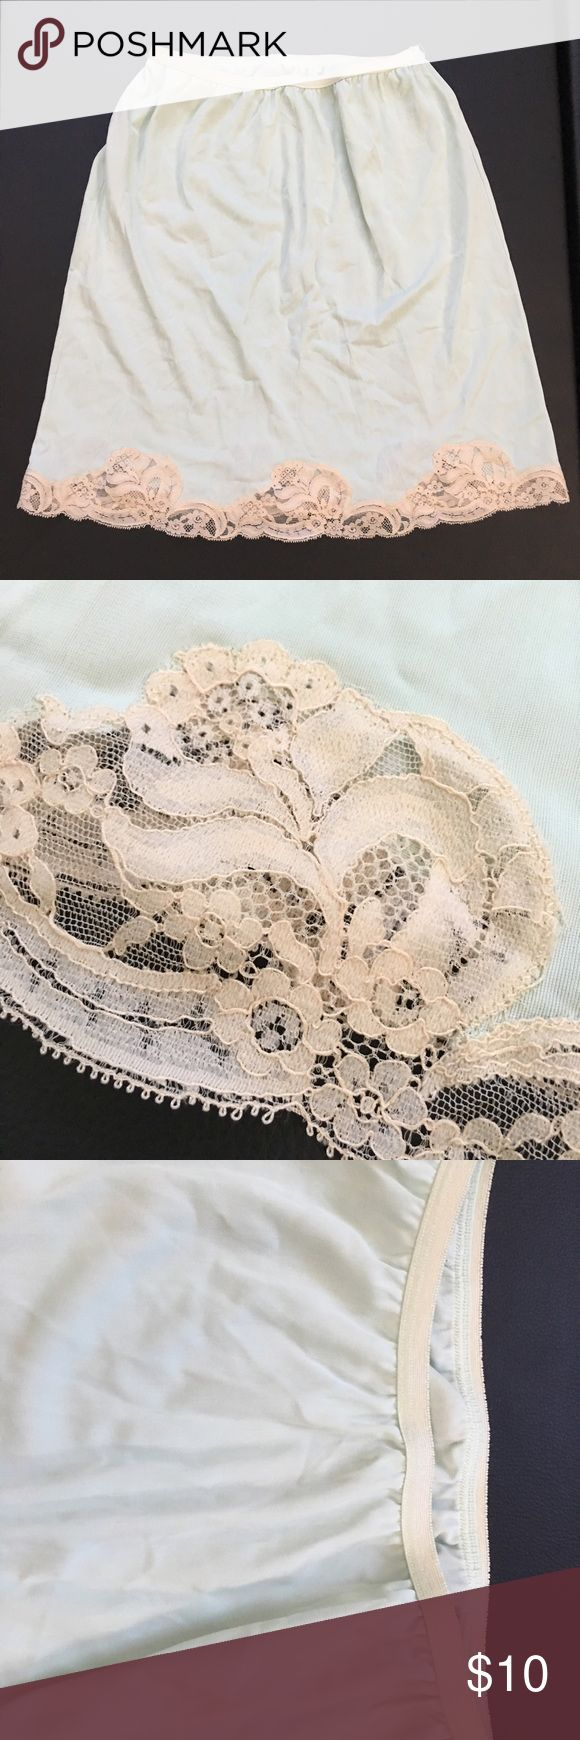 "Vintage Kayser Half Slip Vintage Kayser Half Slip.  100% Nylon.  Light mint color trimmed in Nude Color Lace.  Vintage Size MEDIUM.  Laid flat it measures 11.5"" wide and 18"" long.  Excellent Used Condition. Kayser Intimates & Sleepwear Chemises & Slips"